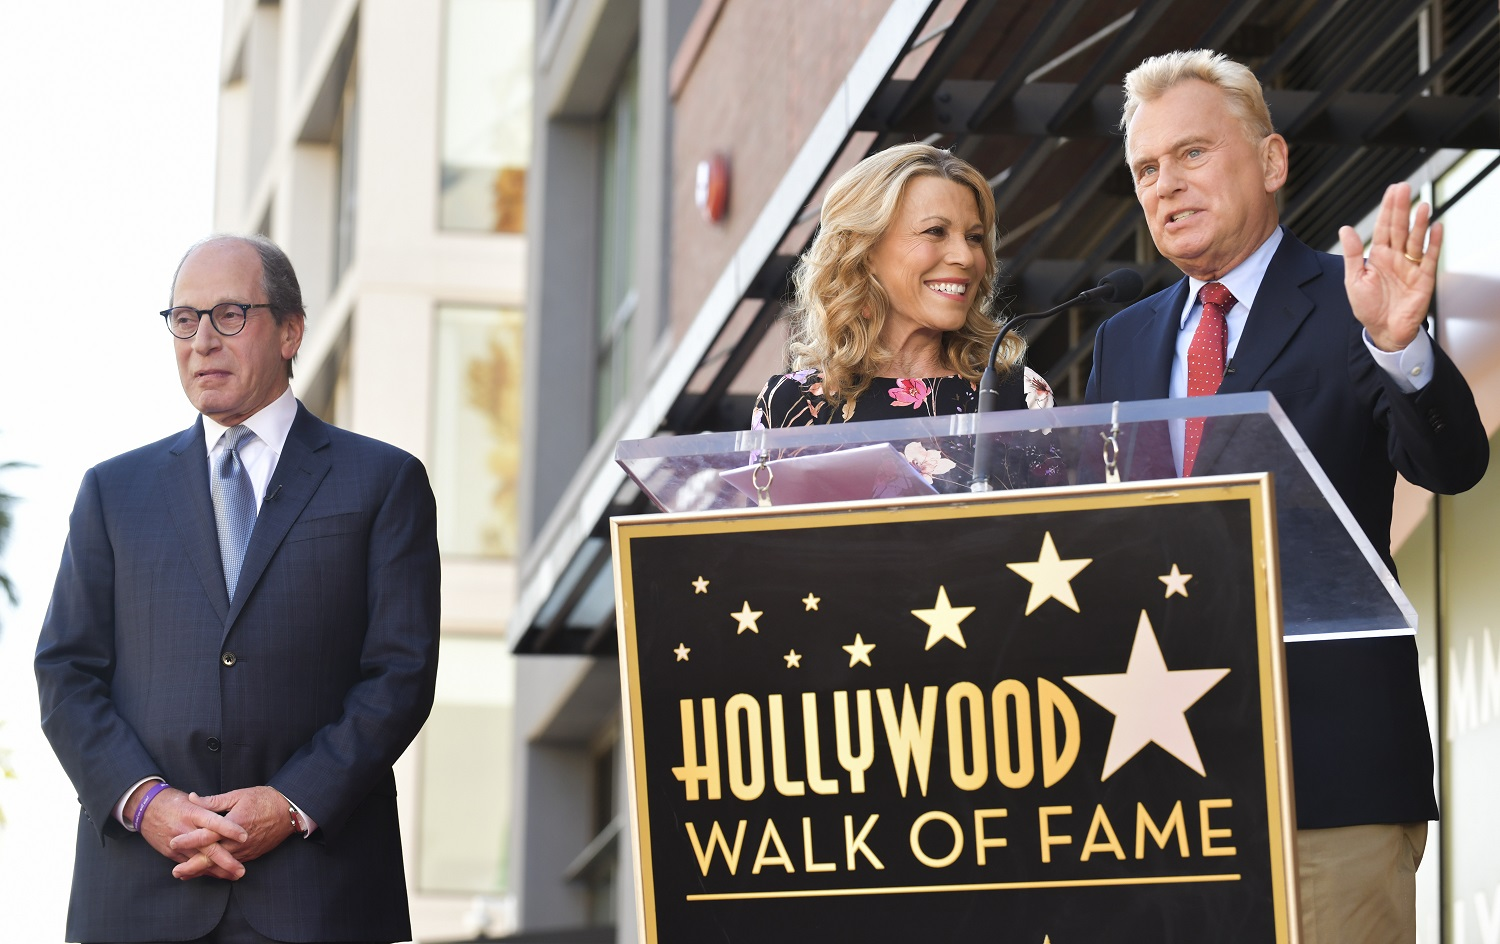 Harry Friedman, Pat Sajak, and Vanna White